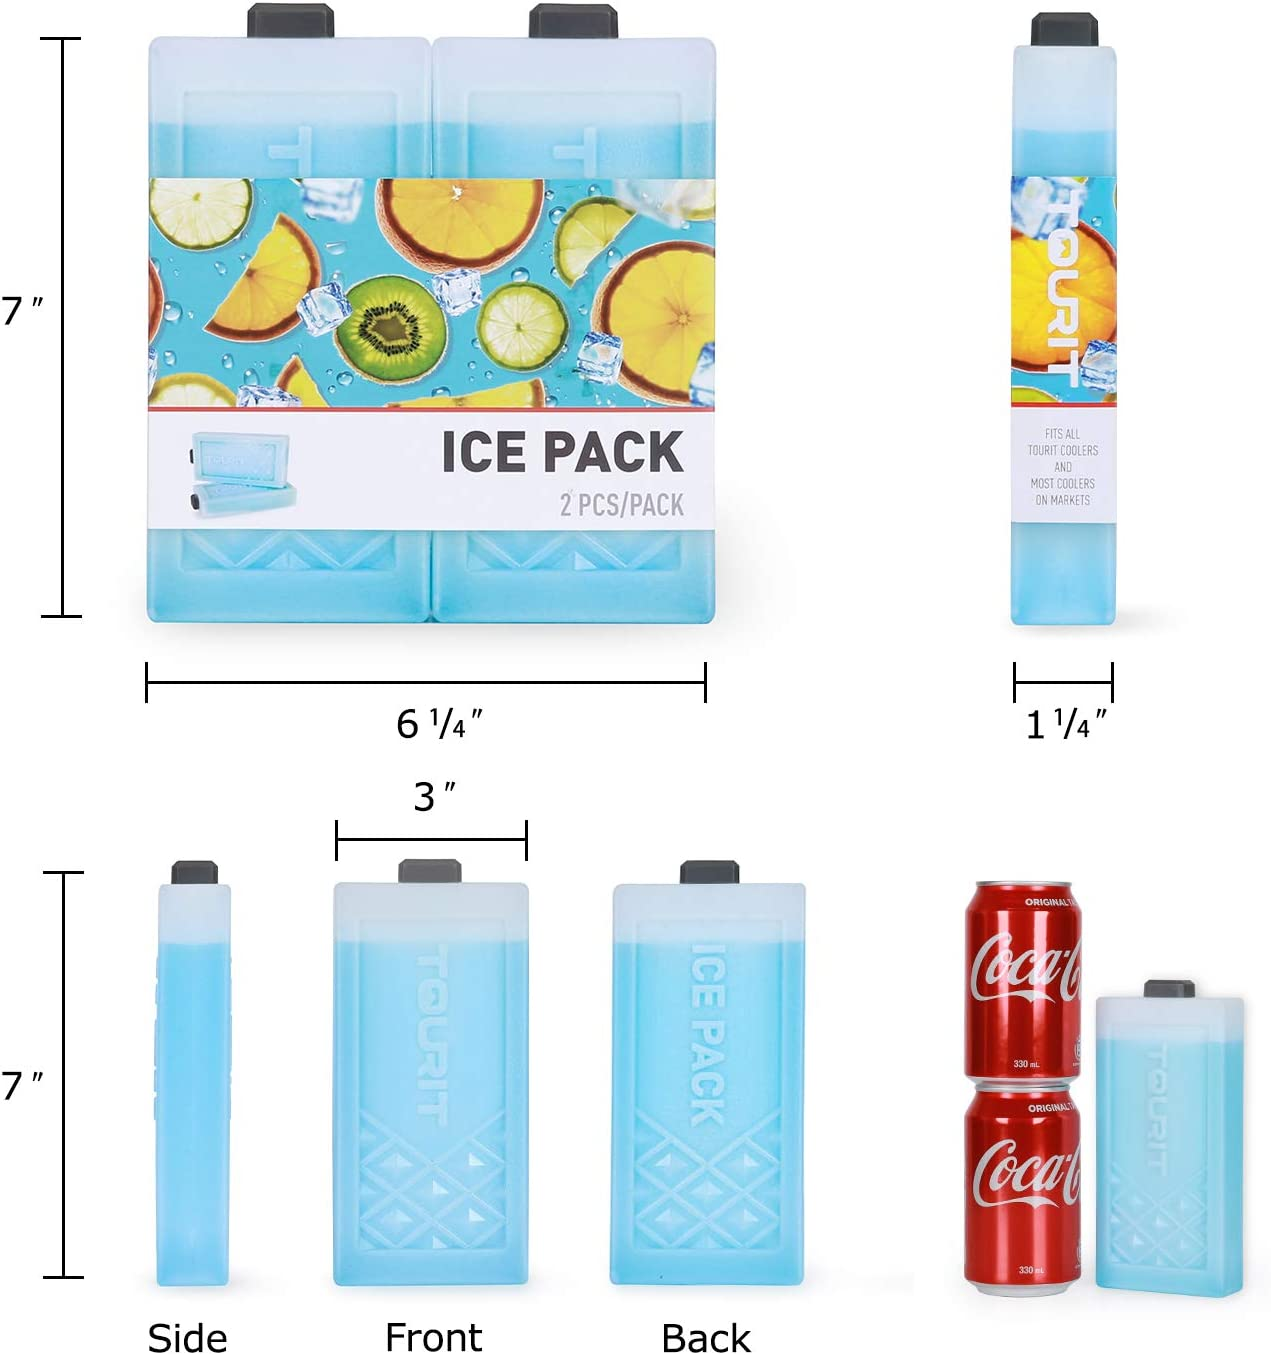 Fishing and More(Set of 2) TOURIT Reusable Ice Packs Long Lasting Ice Block Freezer Cool Packs for Coolers Picnics Camping Lunch Bags//Boxes Cooler Backpack Beach